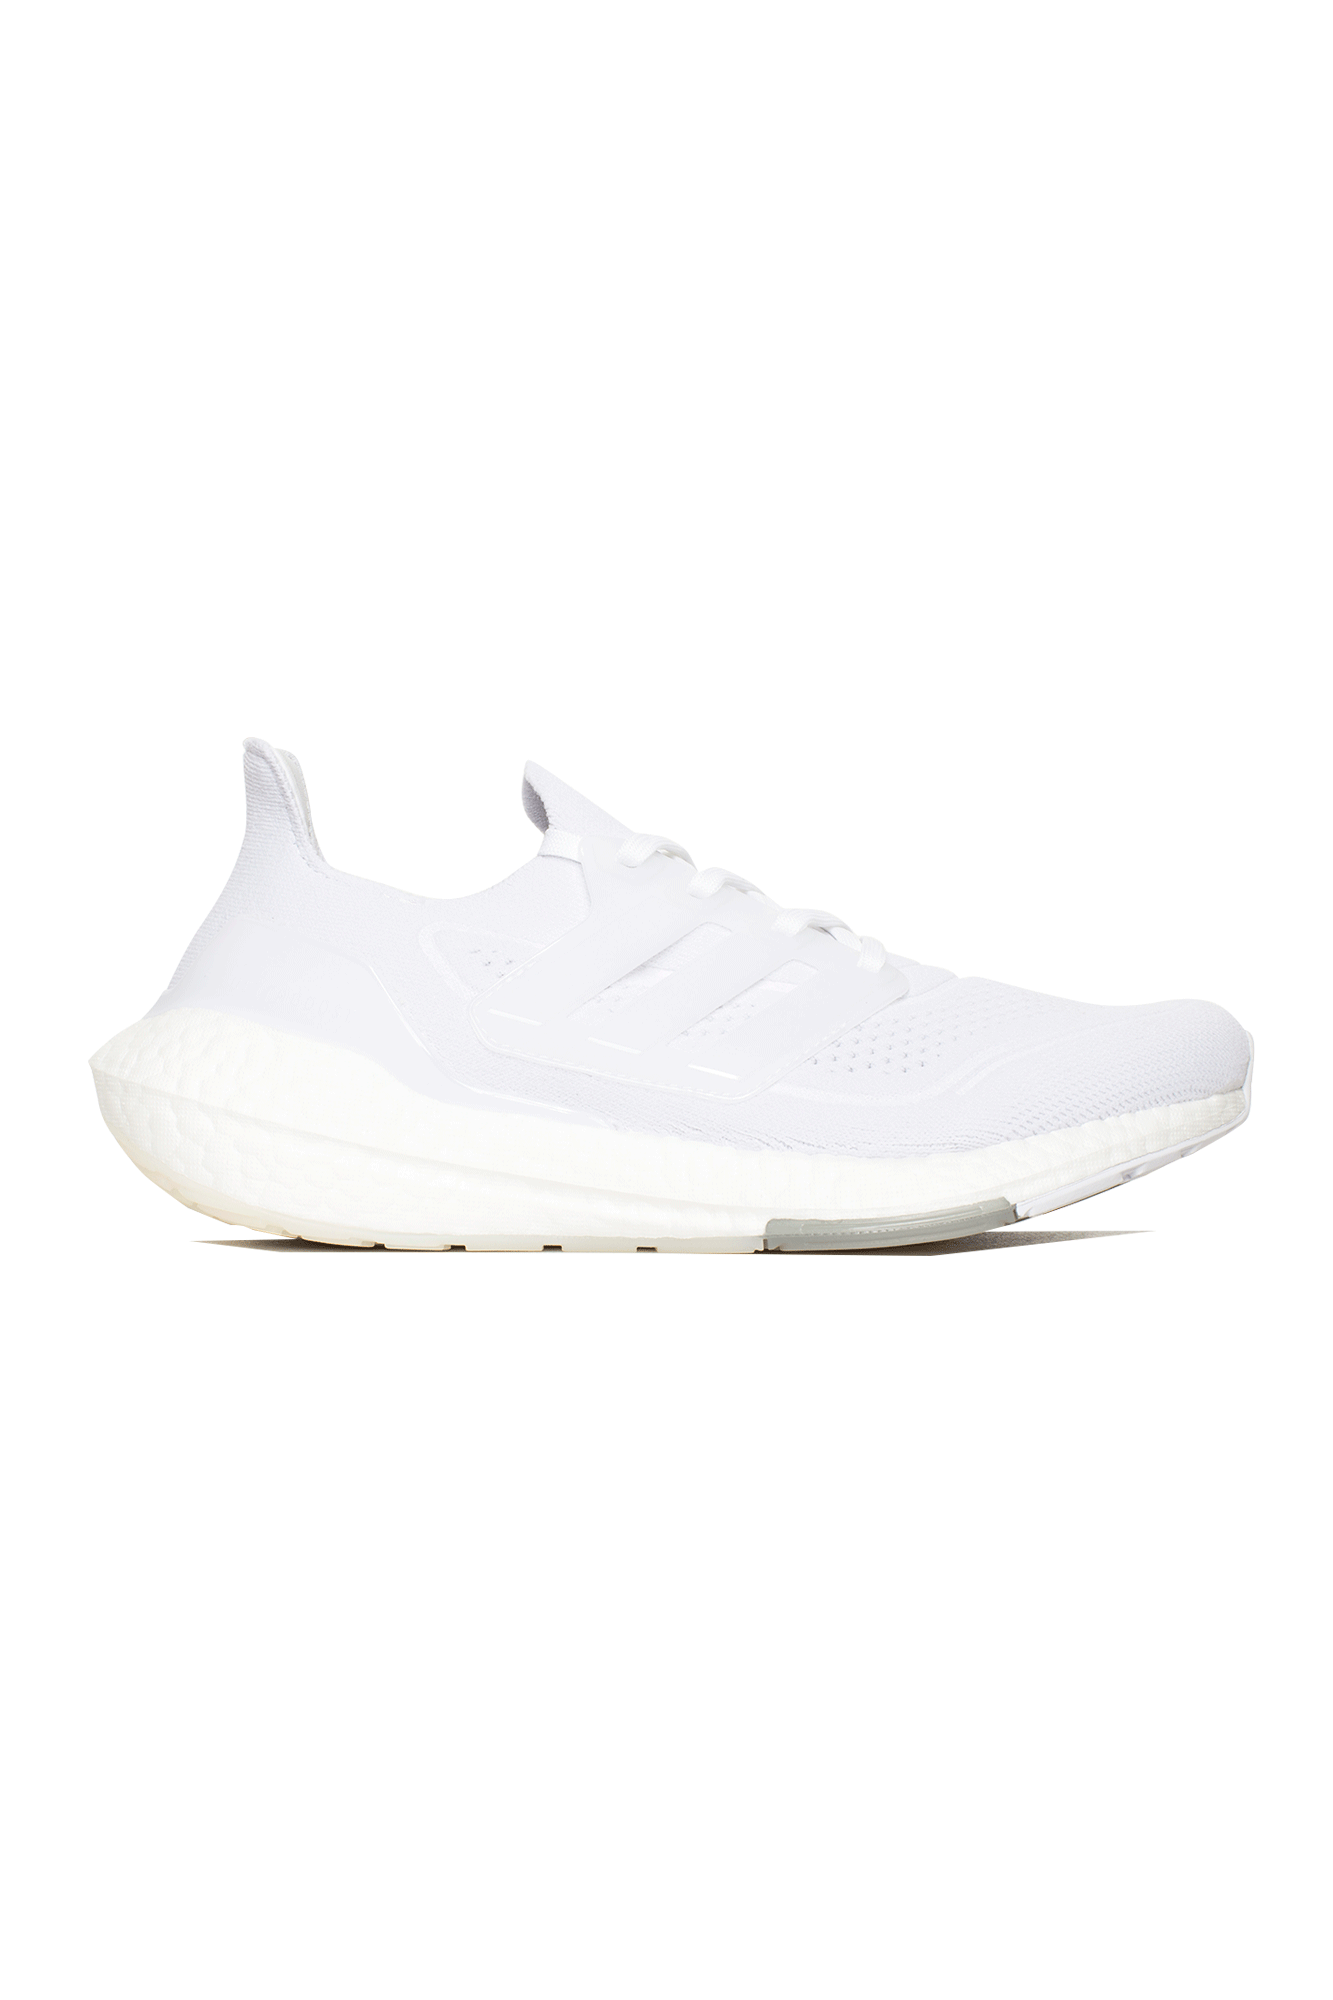 Ultraboost 21 White